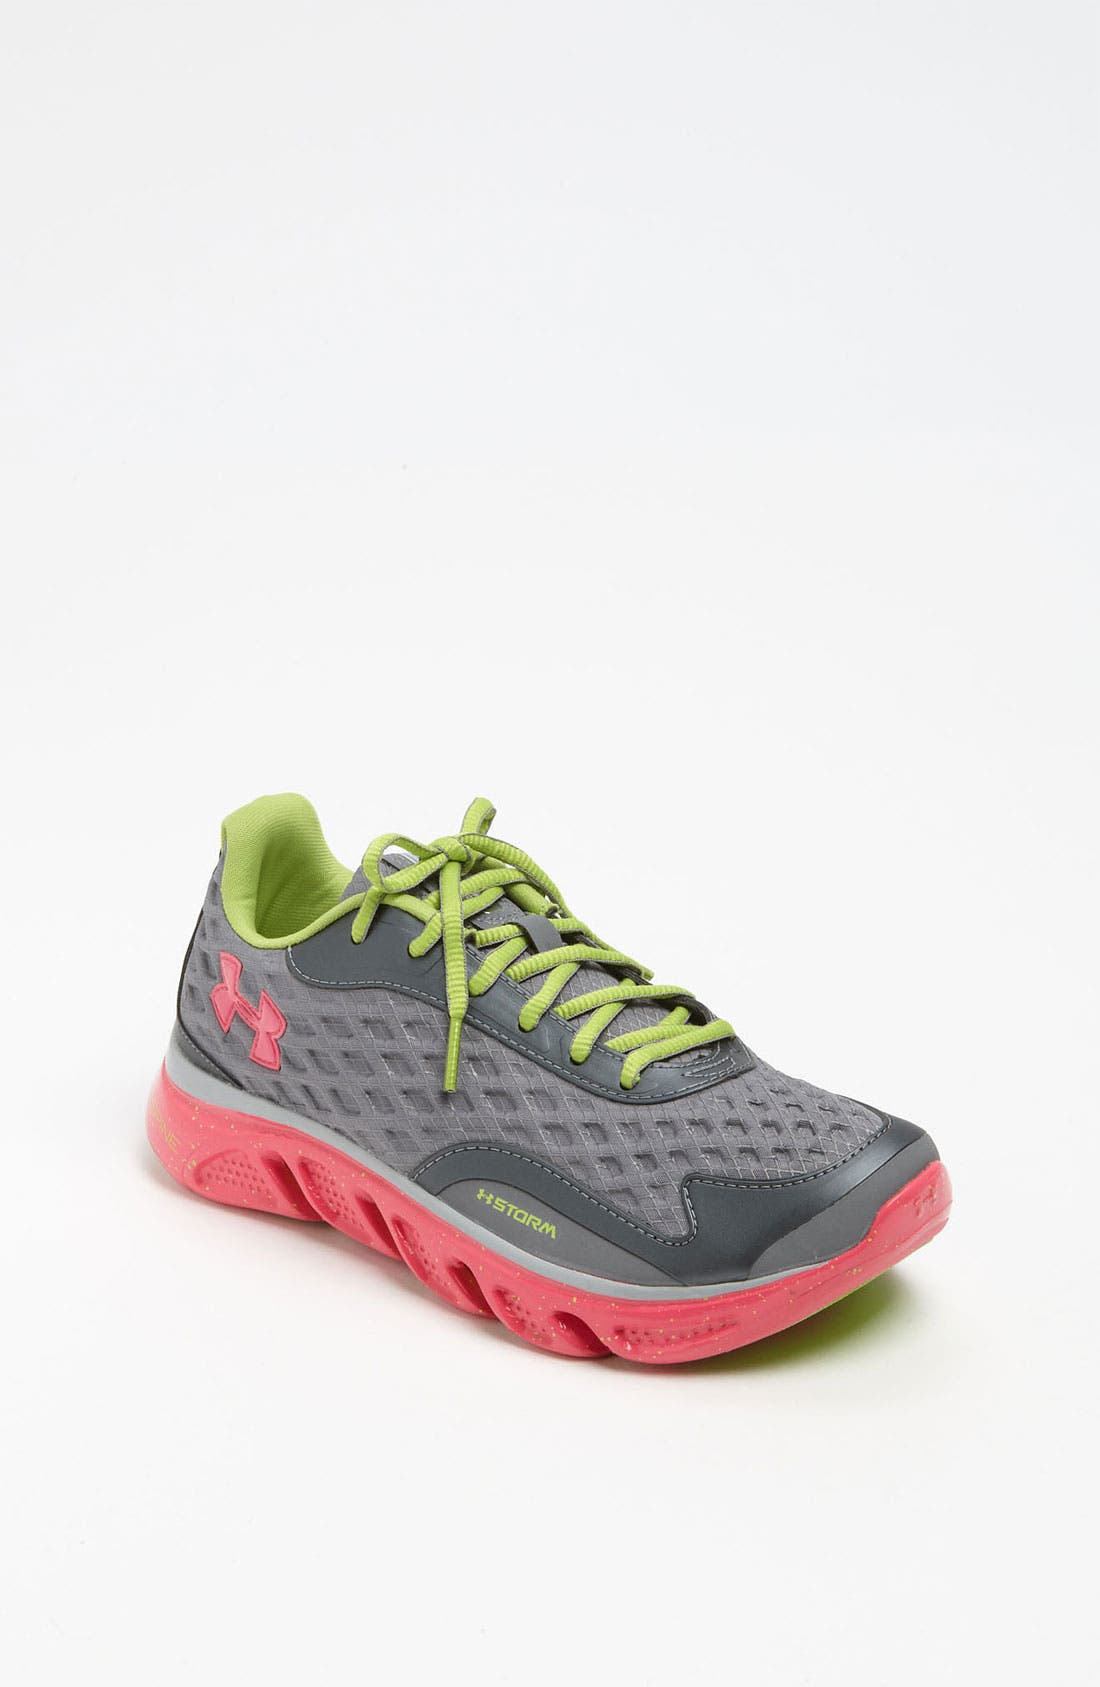 Alternate Image 1 Selected - Under Armour 'GGS Spine RPM Storm' Sneaker (Big Kid)